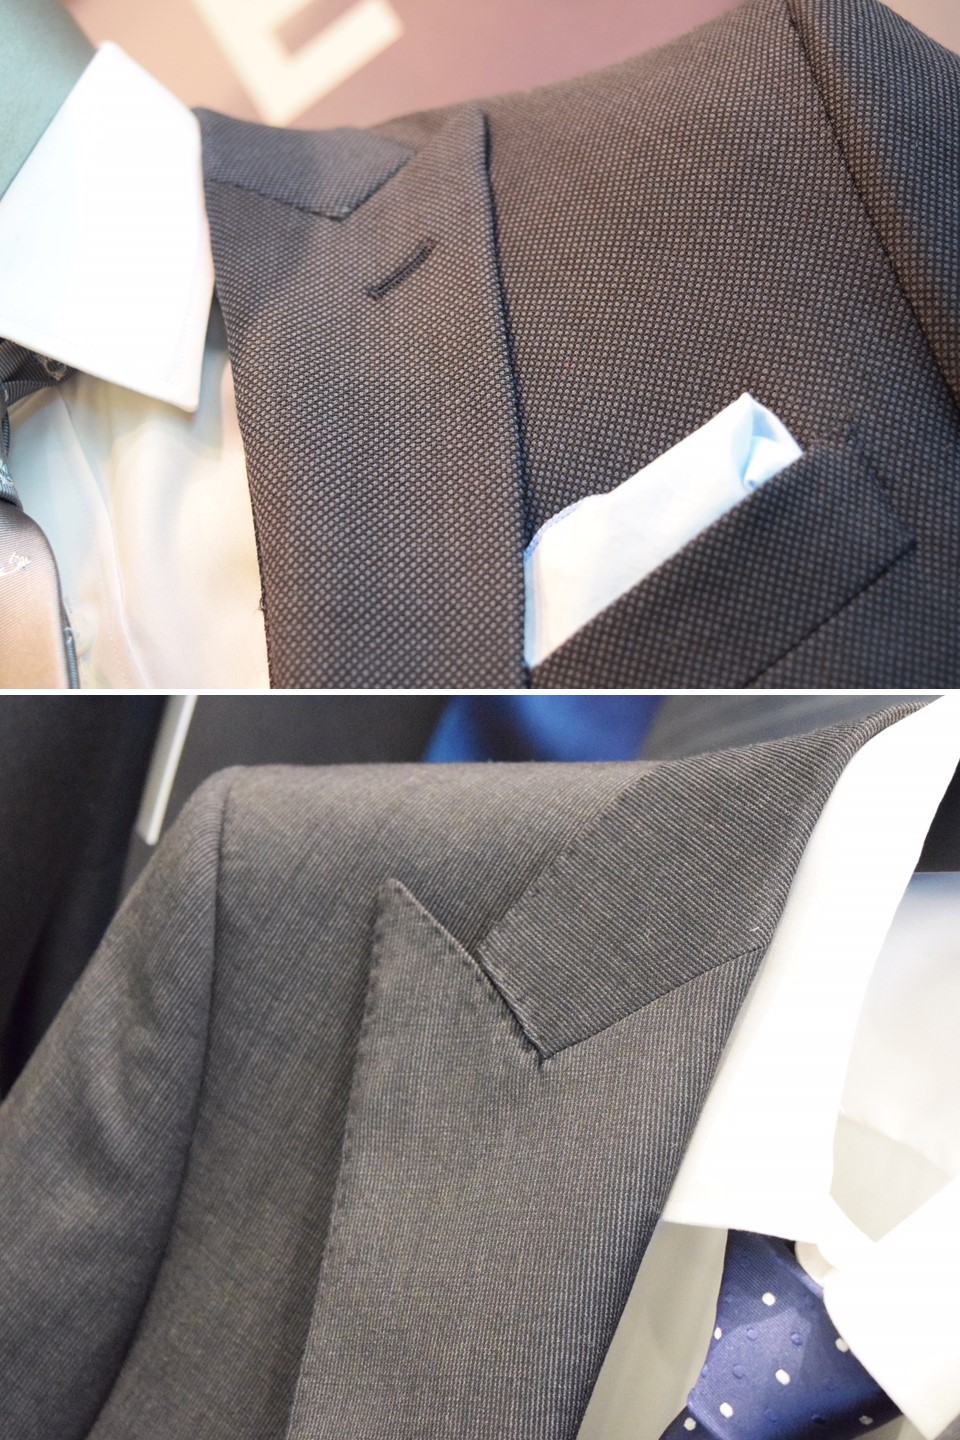 Personalizing a custom suit